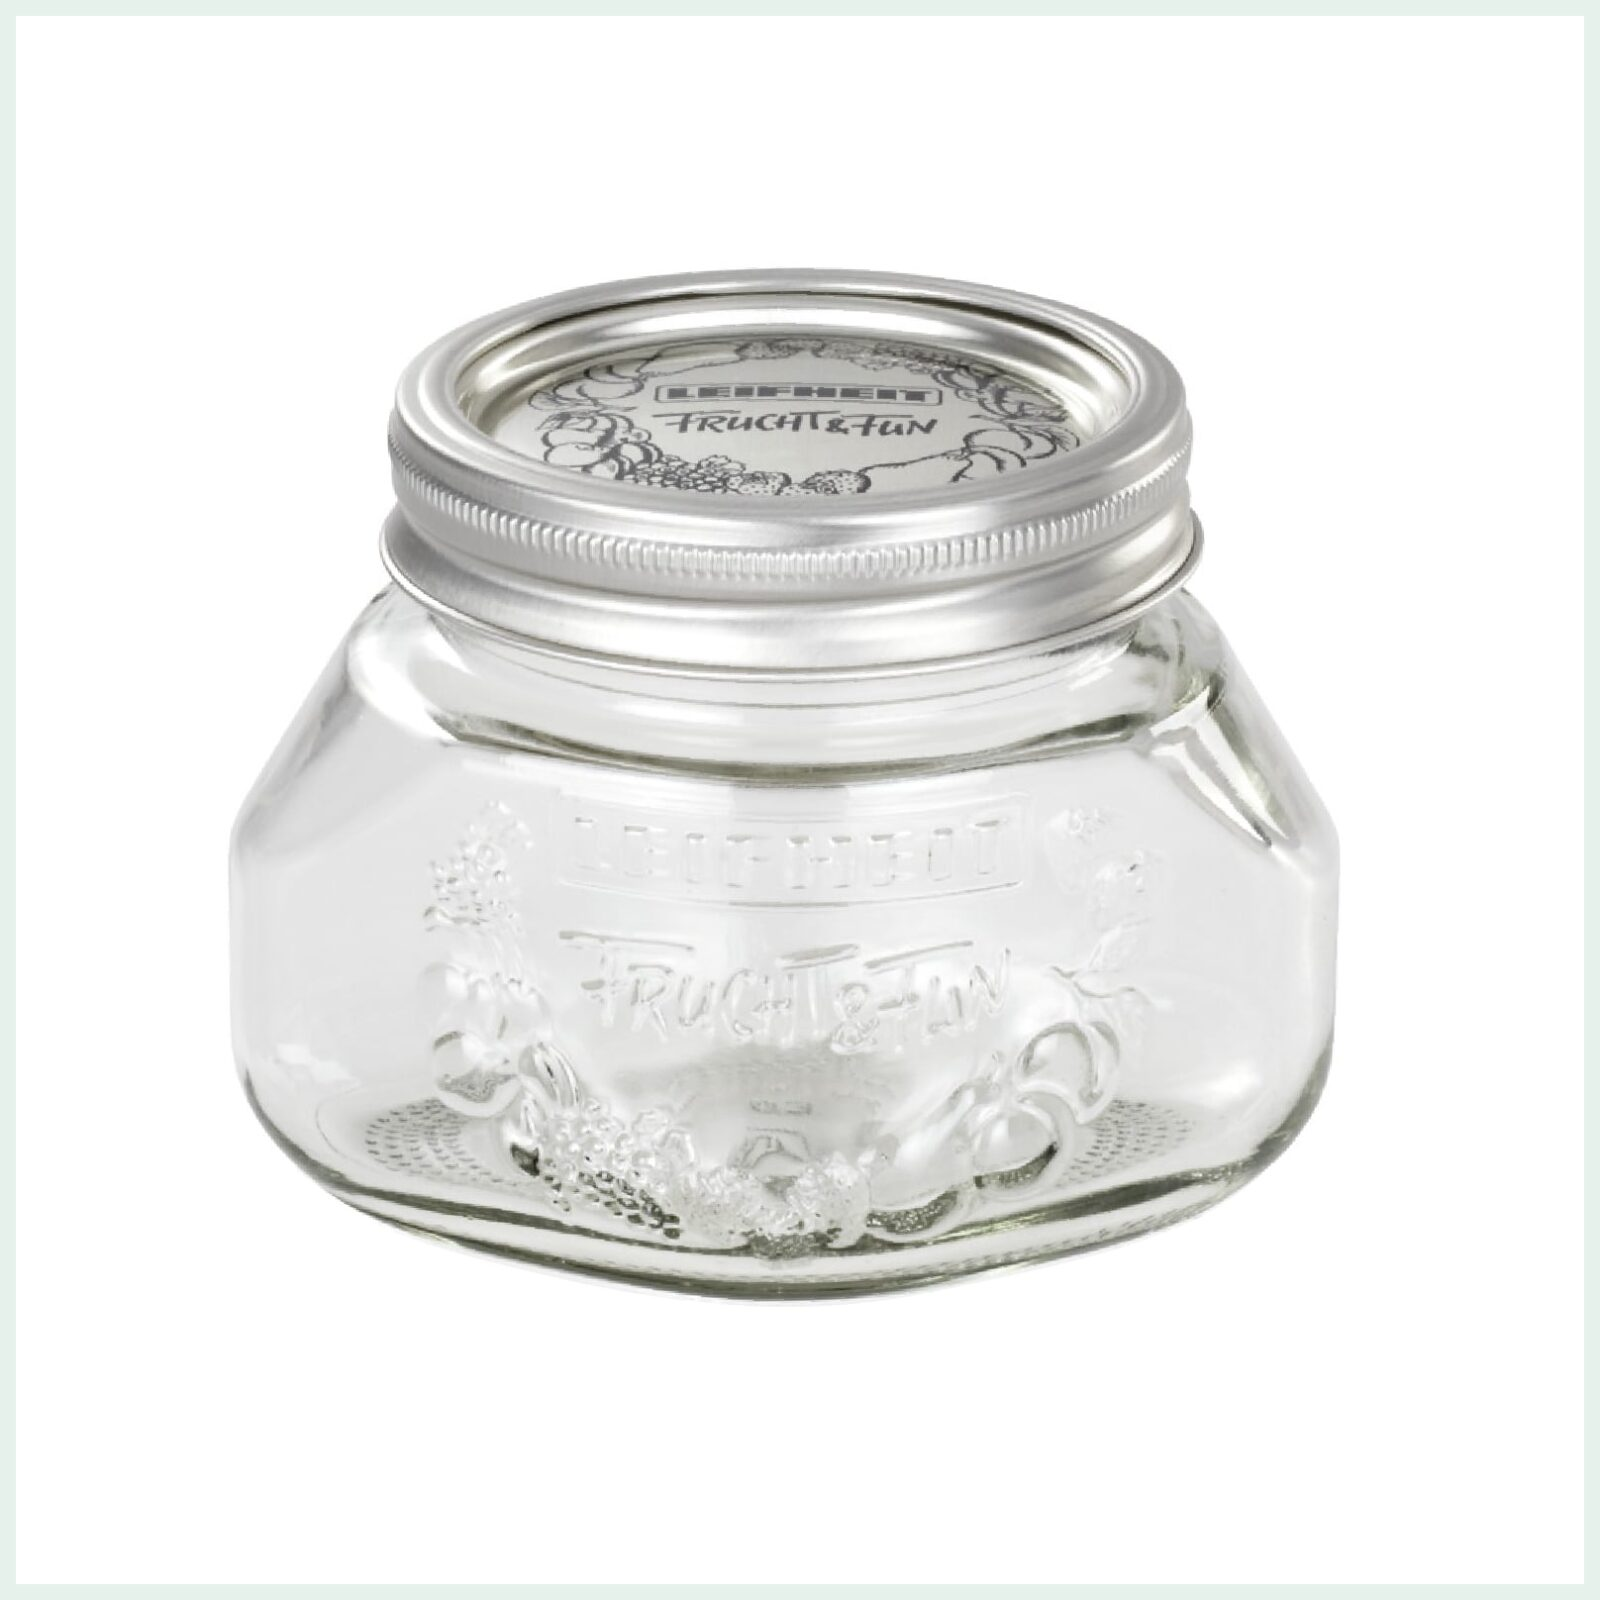 0.25 Litre Leifheit Wide Mouth Preserve Jar for Jam Making and Canning